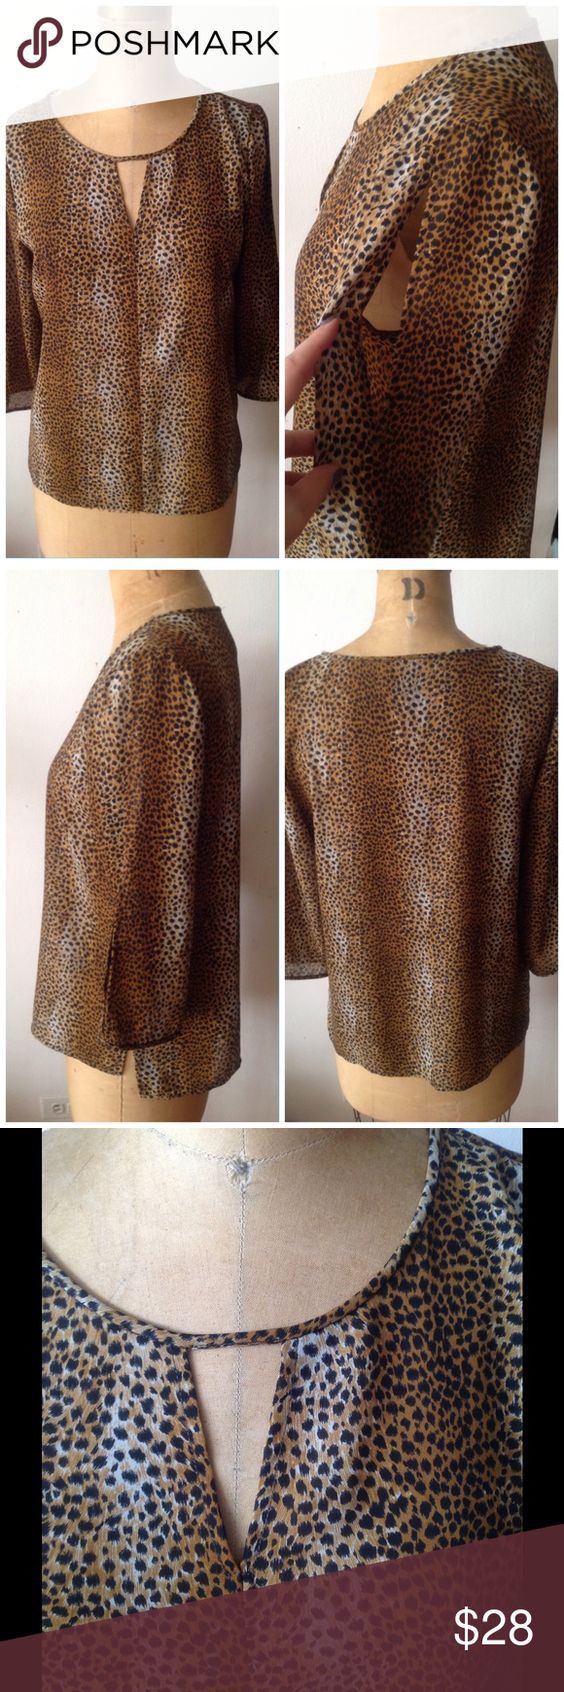 LEOPARD PRINTED CHIFFON TOP Beautiful chiffon top, Tiny leopard printing. Sexy v opening at the center neckline. Hem slightly hi/lol design. 3/4 sleeves. Cold shoulder design. Super soft fabric. Great for work or a night out. Great top! Tops